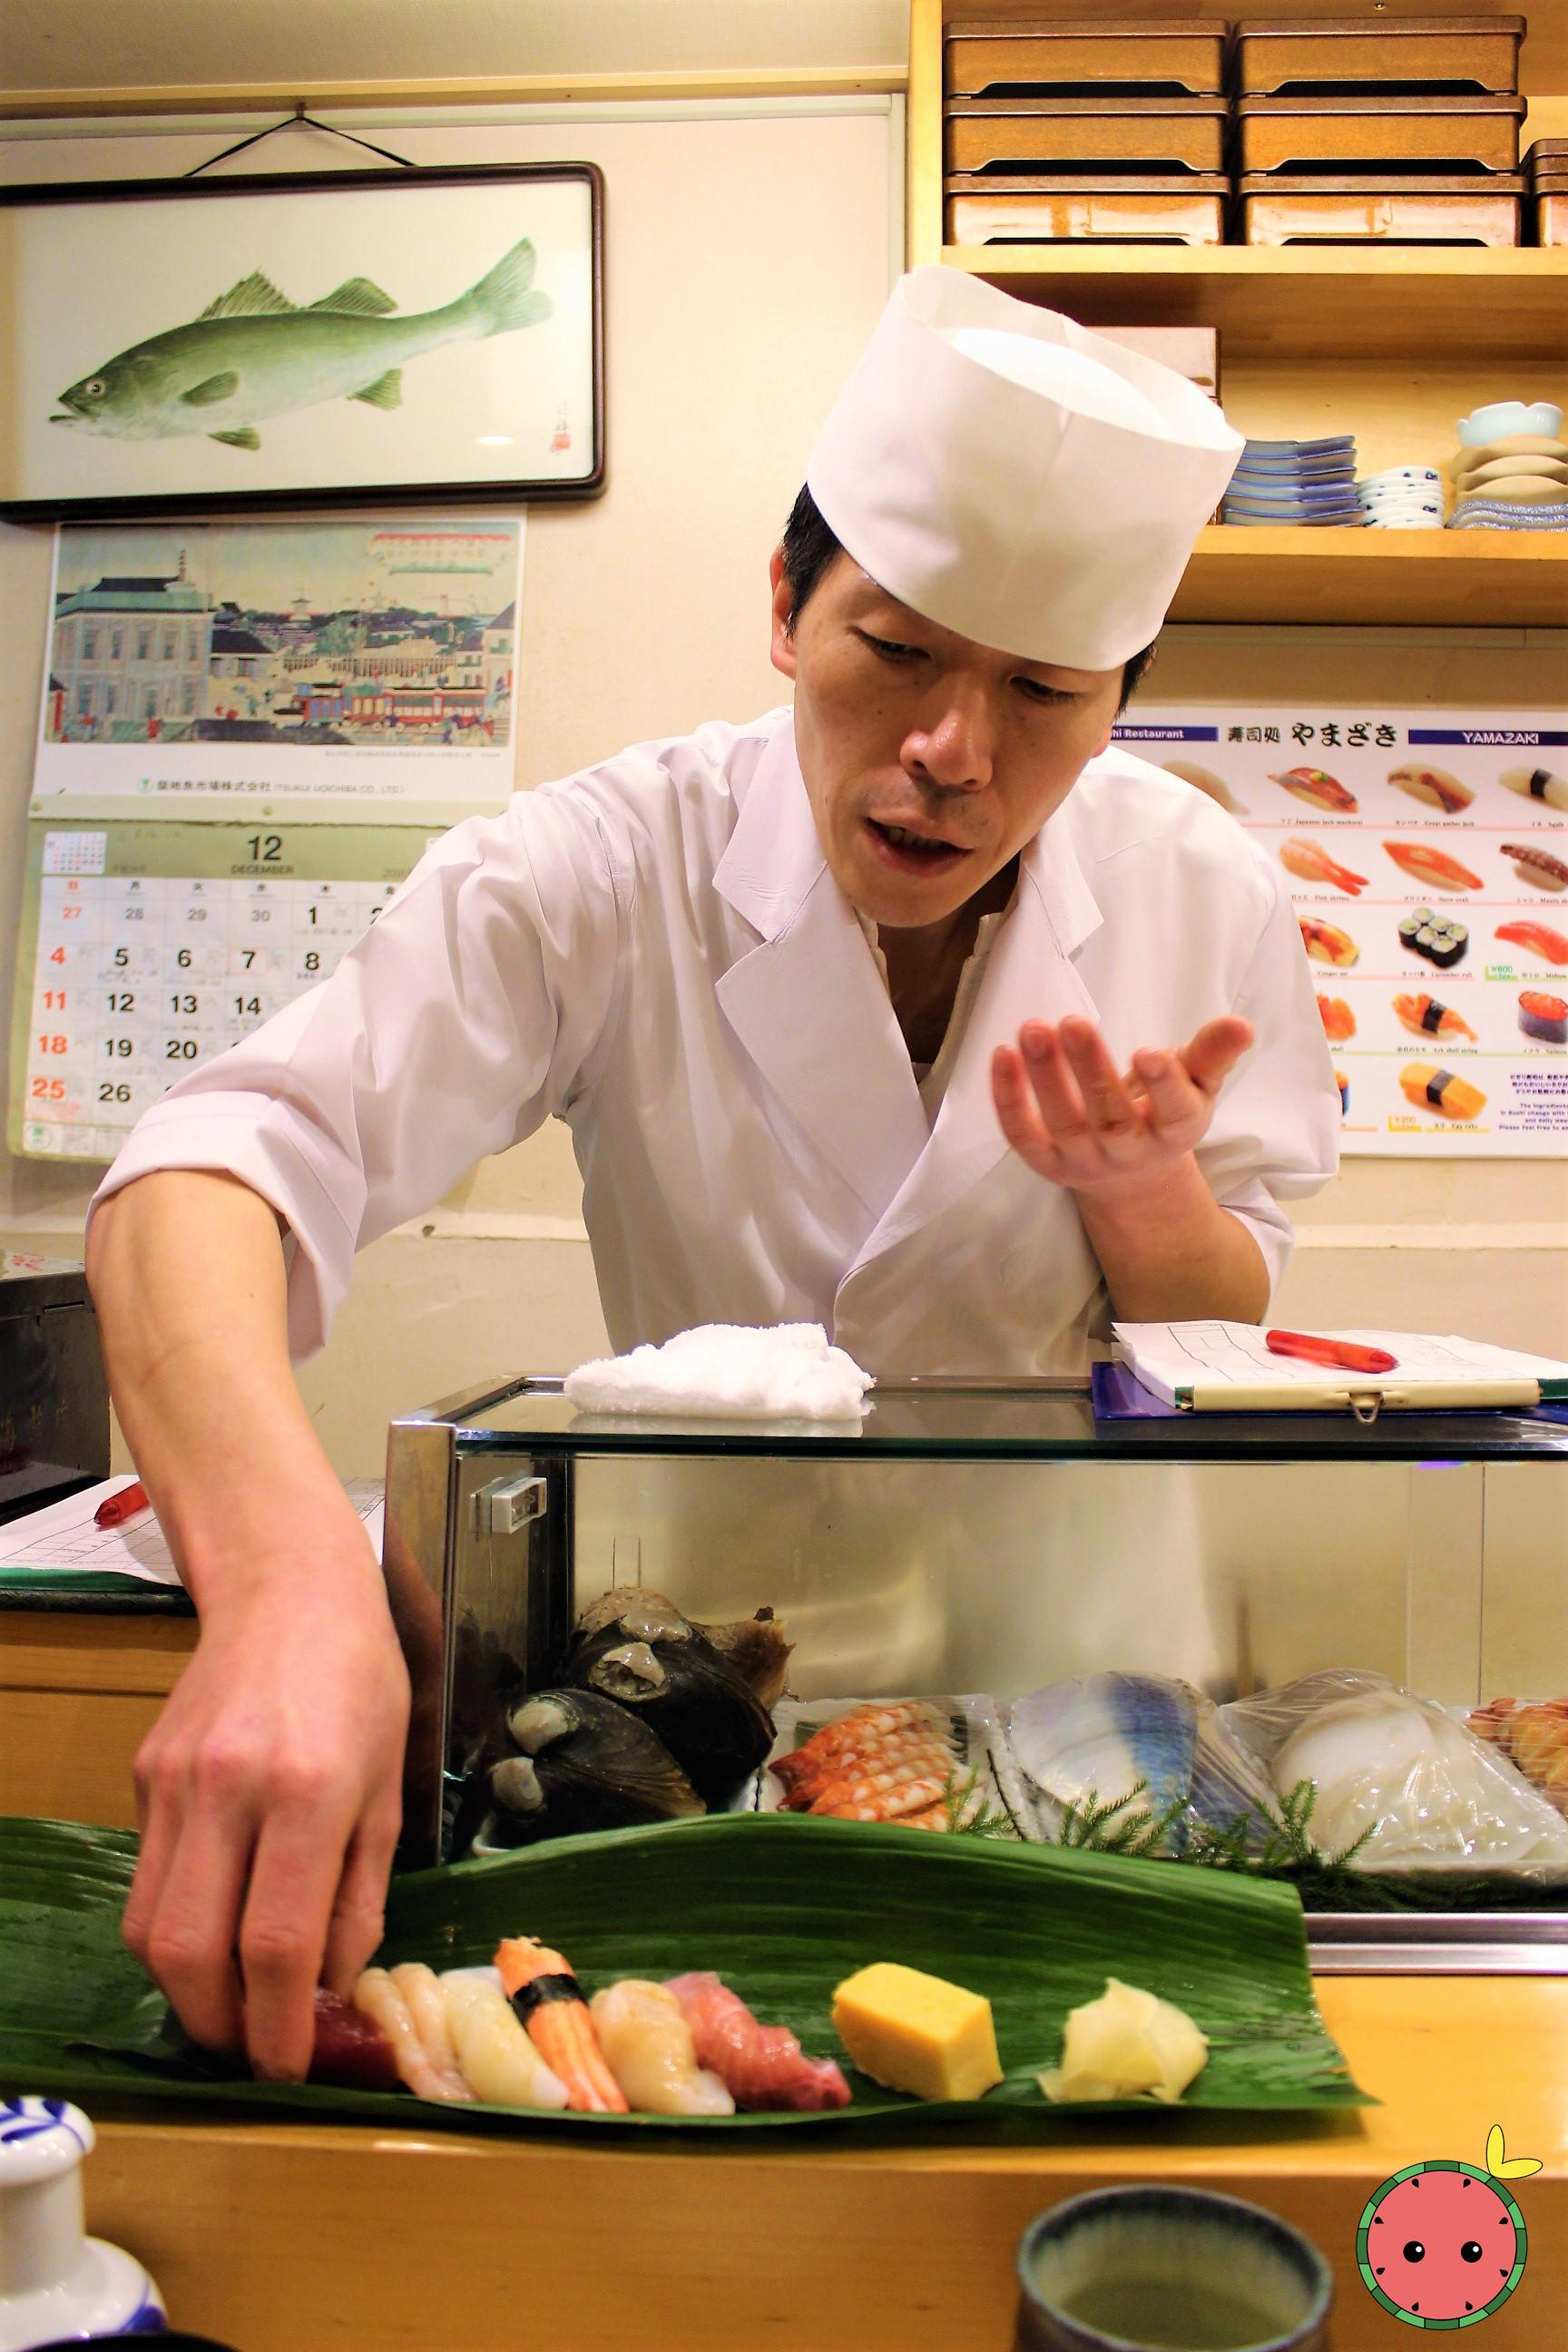 Chef placing sushi